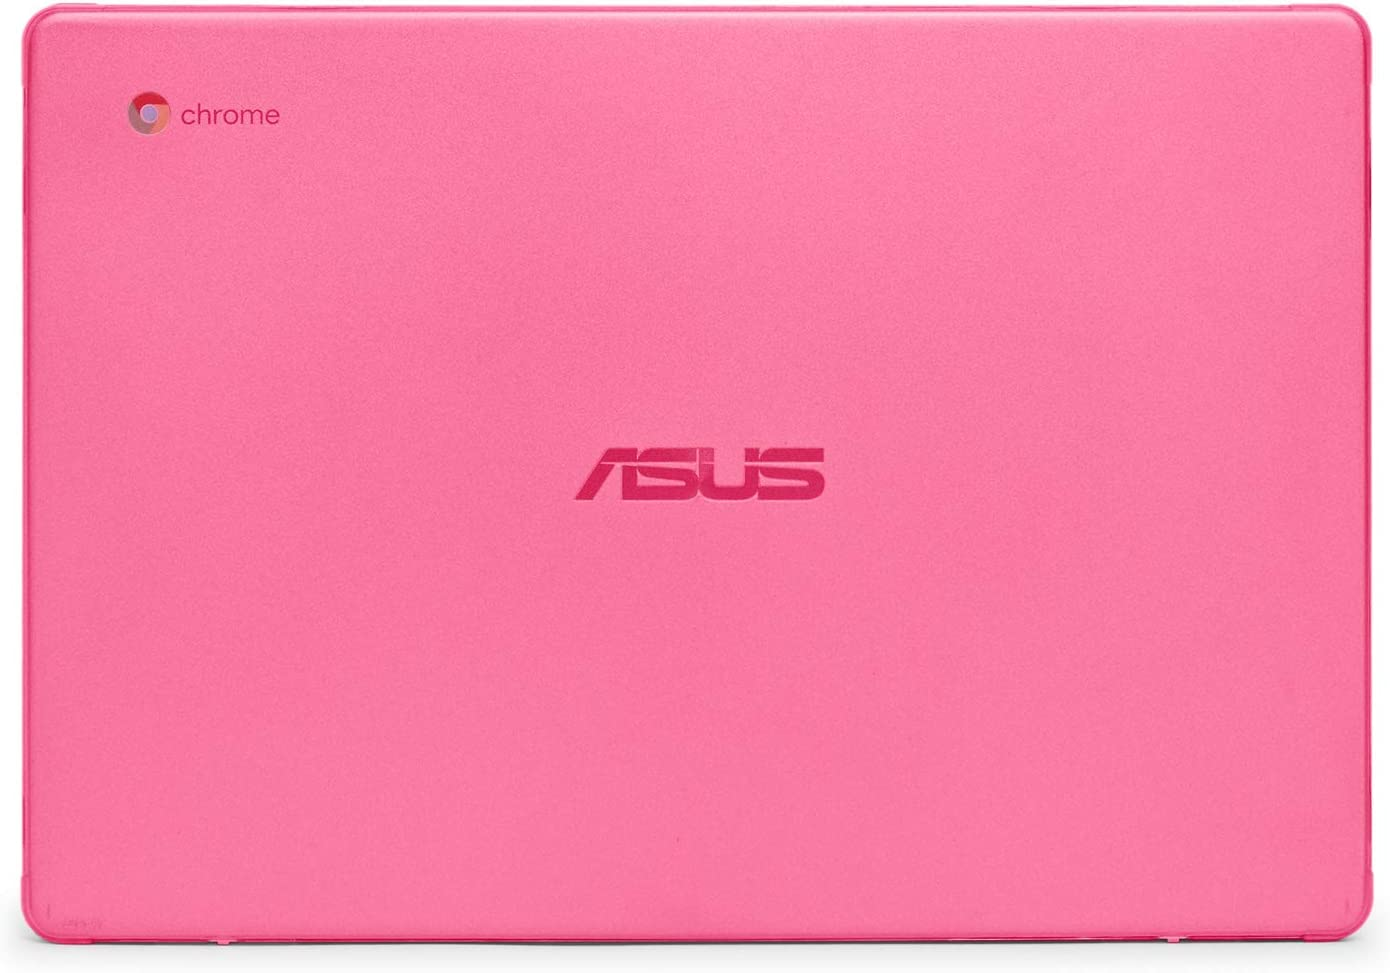 mCover Hard Shell Case for 2019 14-inch ASUS Chromebook C423NA Series Laptop - ASUS C423 Pink